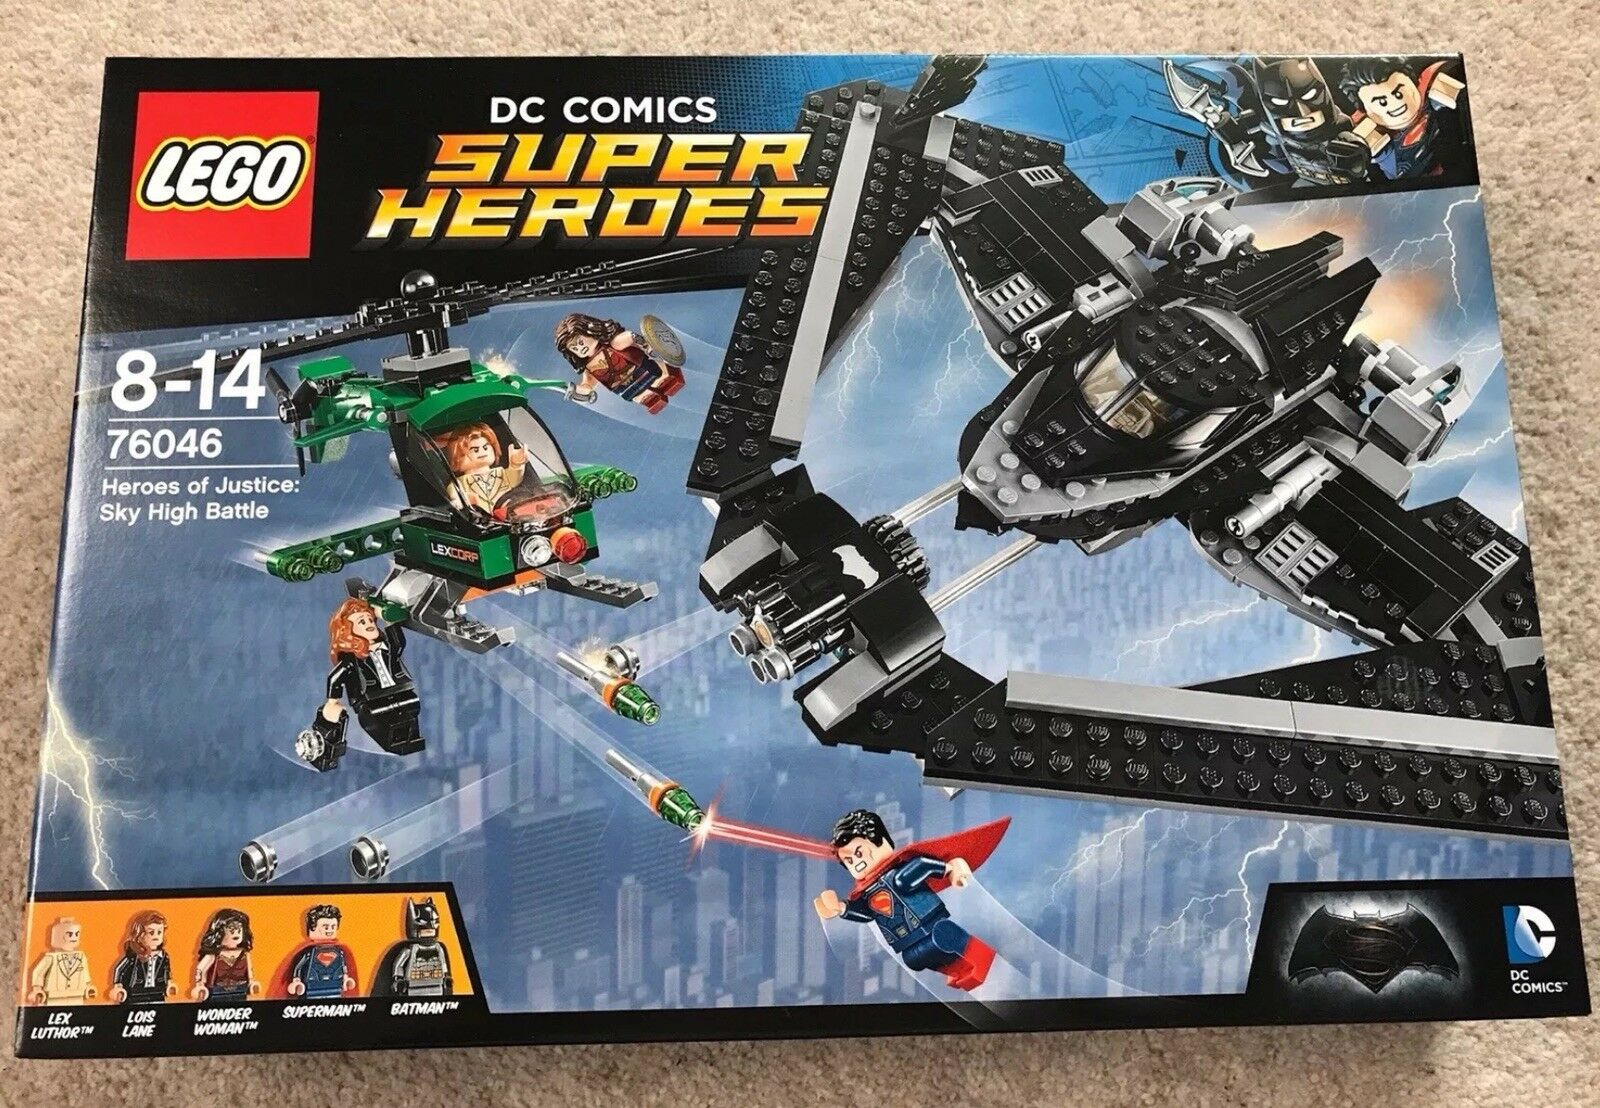 Lego DC Super Heroes Batman Heroes of Justice Sky High Battle 76046 – NEW